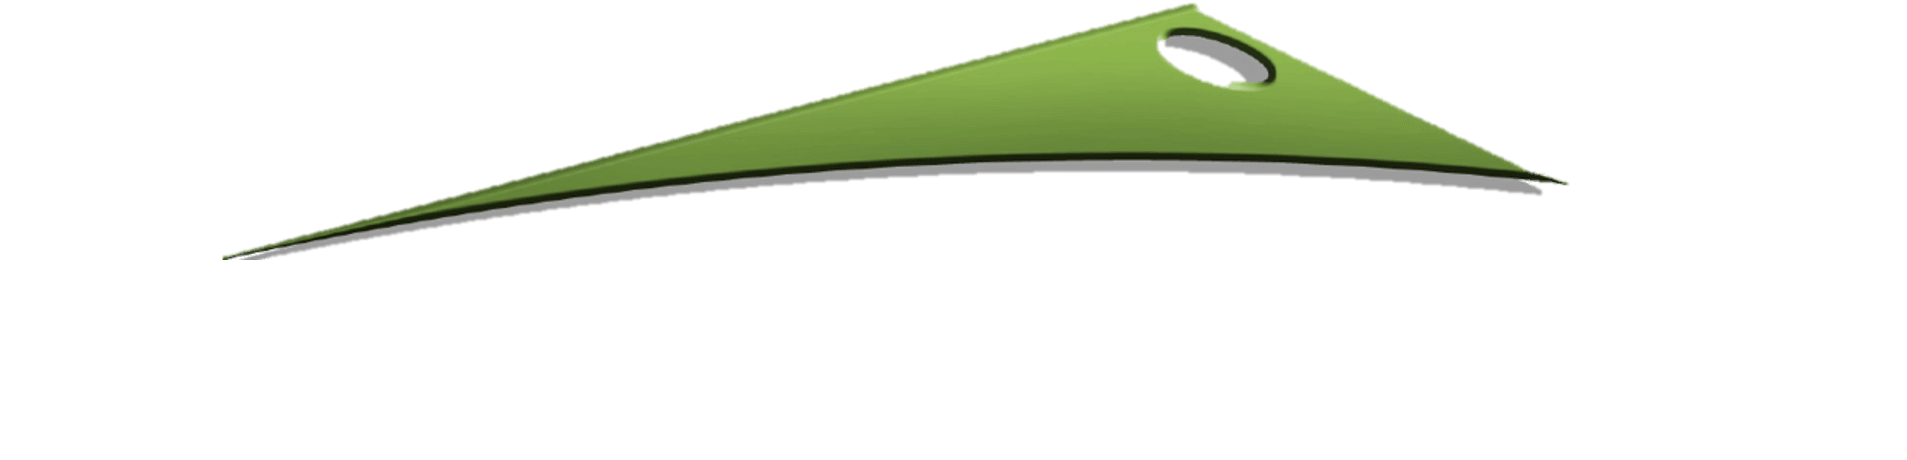 Advance Design Group Professional Engineering & Land Surveying